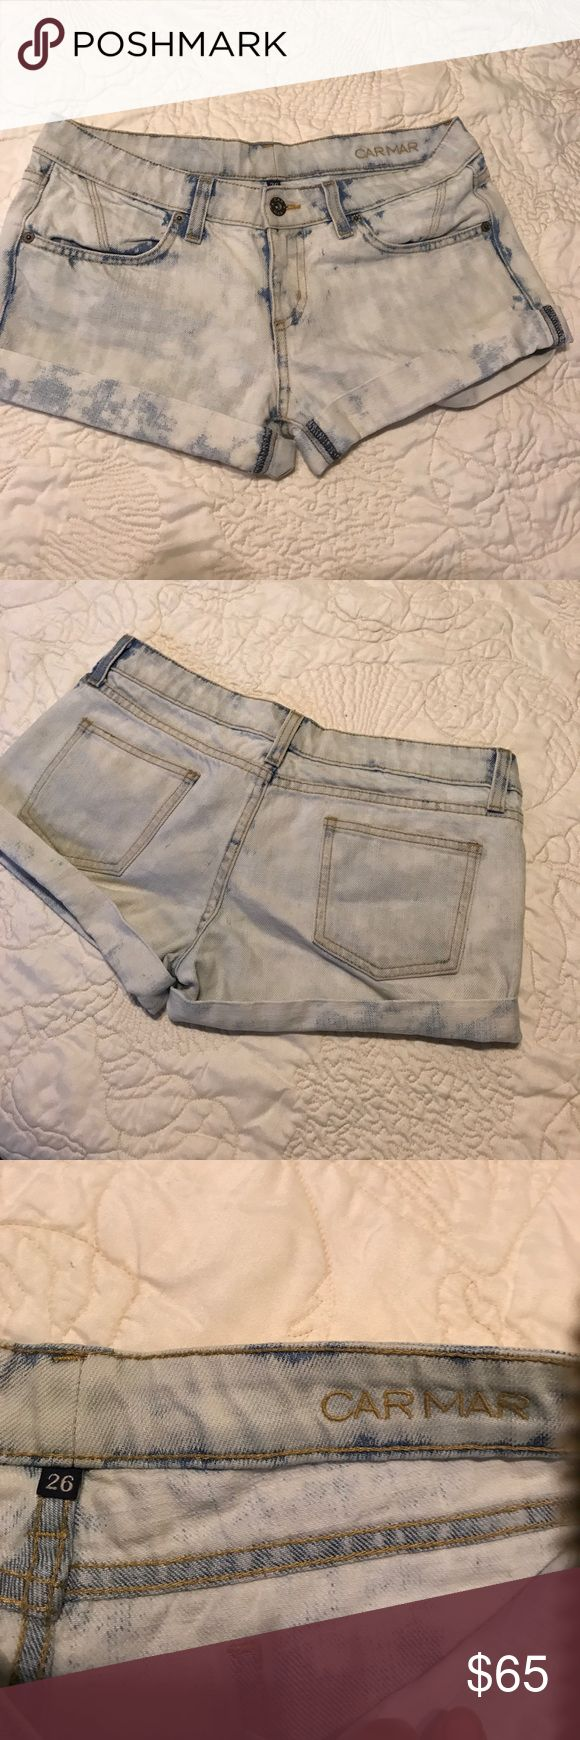 CARMAR acid wash shorts Worn once. Perfect condition, i love them but they don't fit me anymore Carmar Shorts